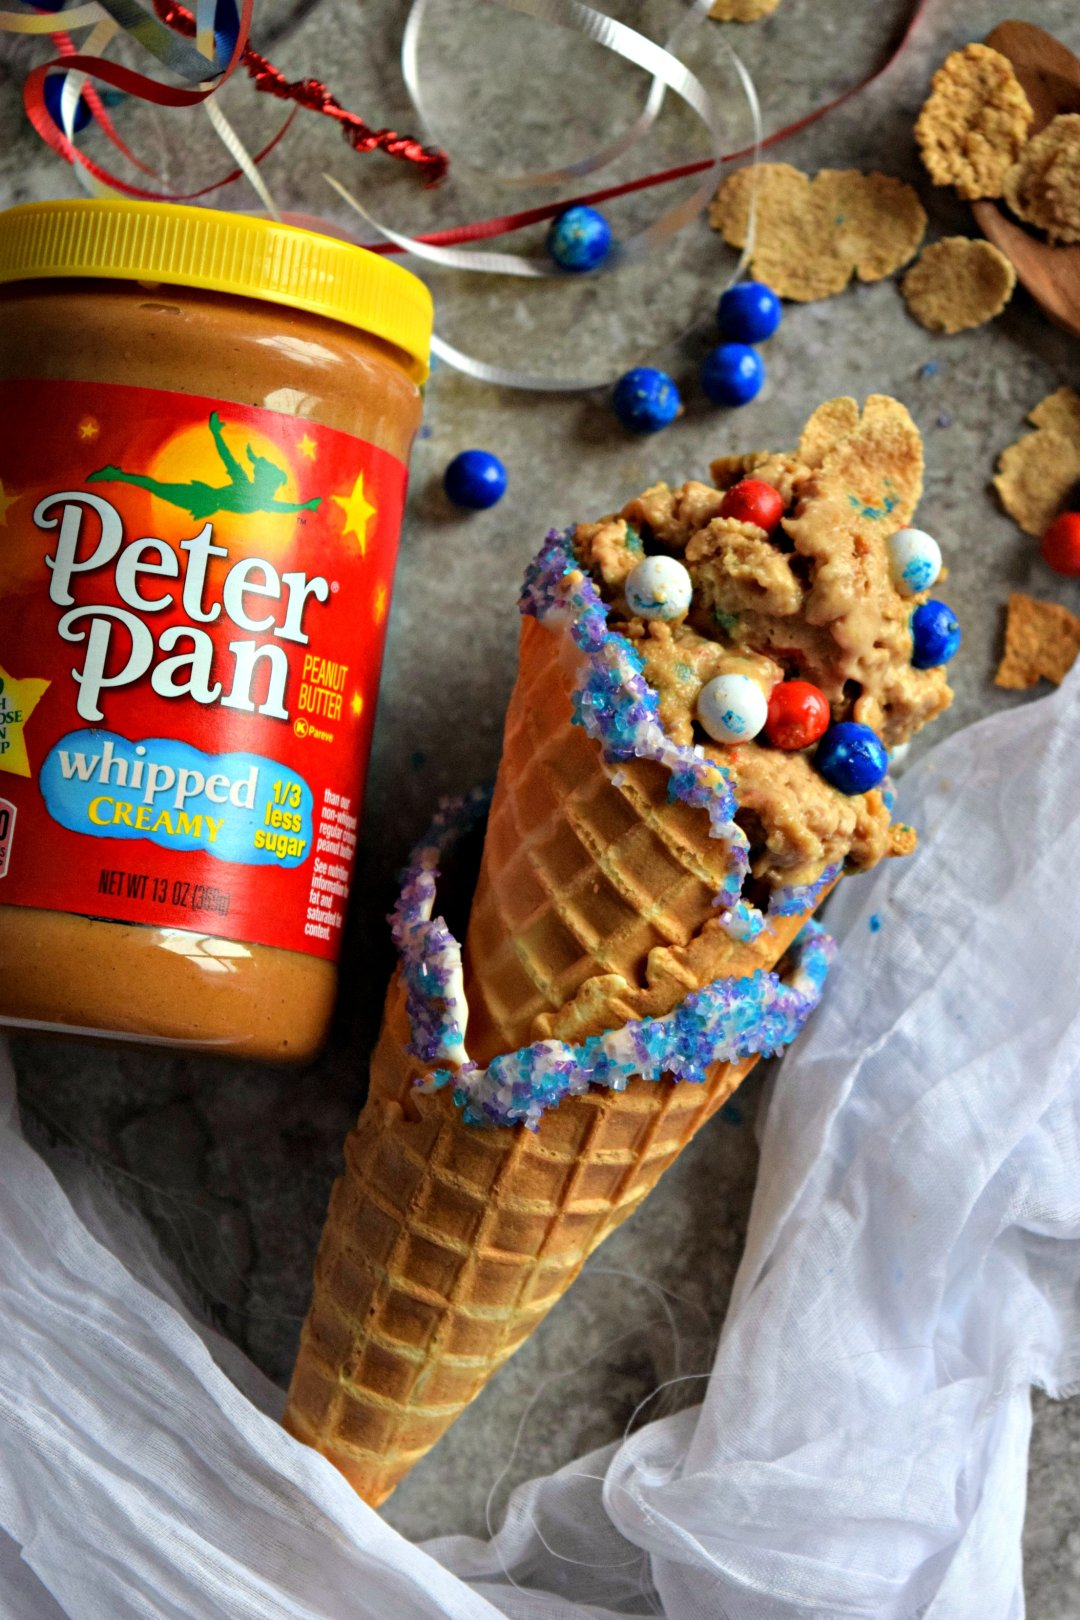 Vegan No Churn Peter Pan Peanut Butter & Cereal Ice CreamDesserts